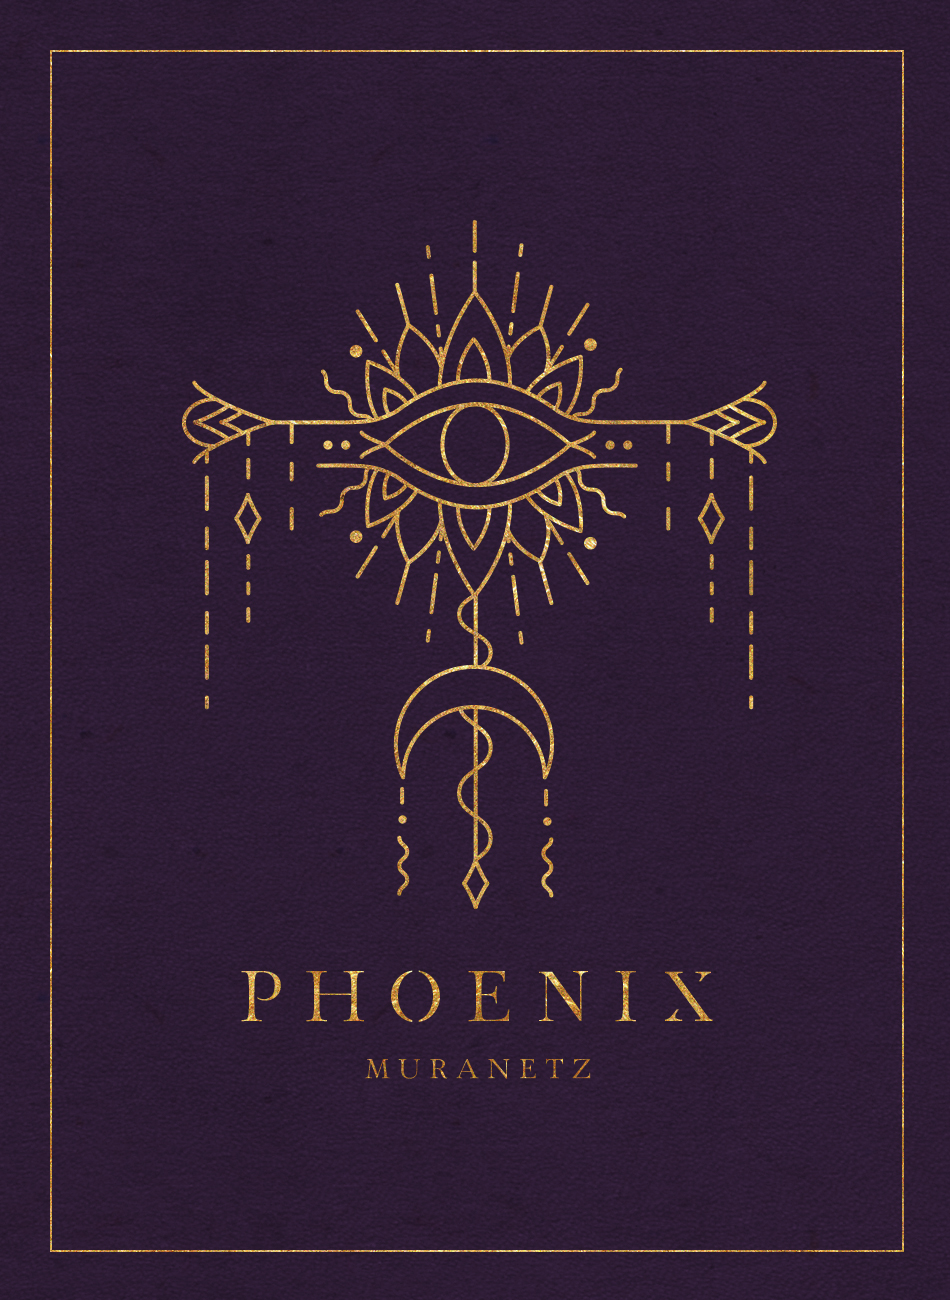 phoenix muranetz: branding by kelly james